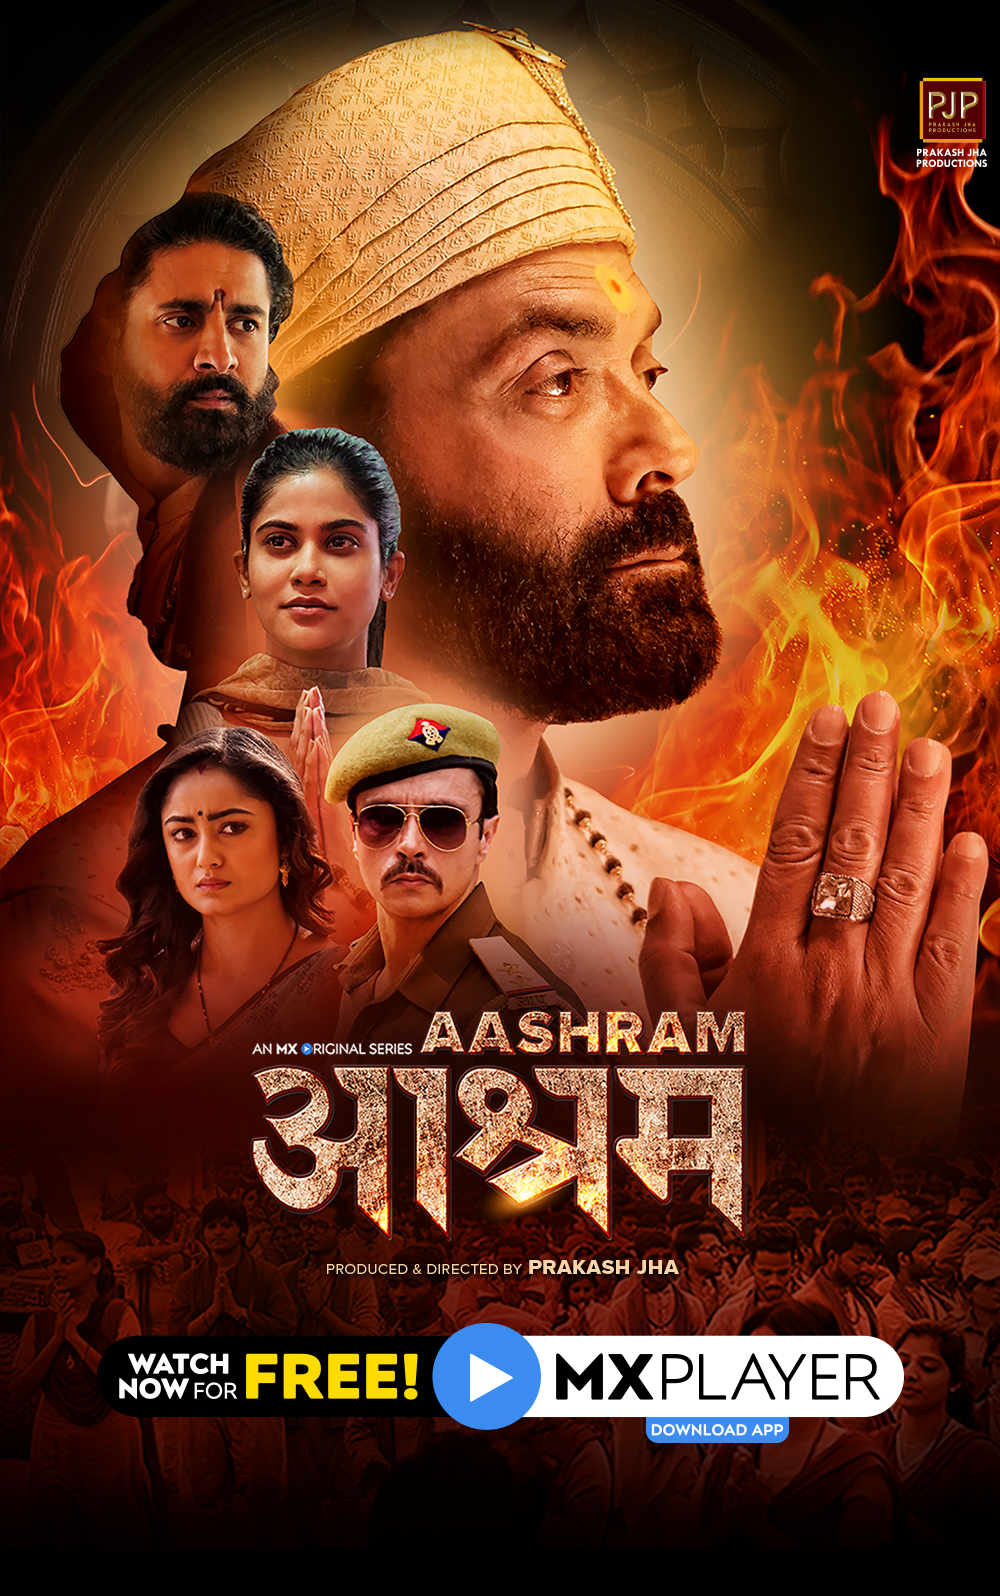 Aashram Chapter 2 The Dark Side 2020 S02 Hindi MX Player Original Web Series Official Trailer 1080p HDRip 57MB Download